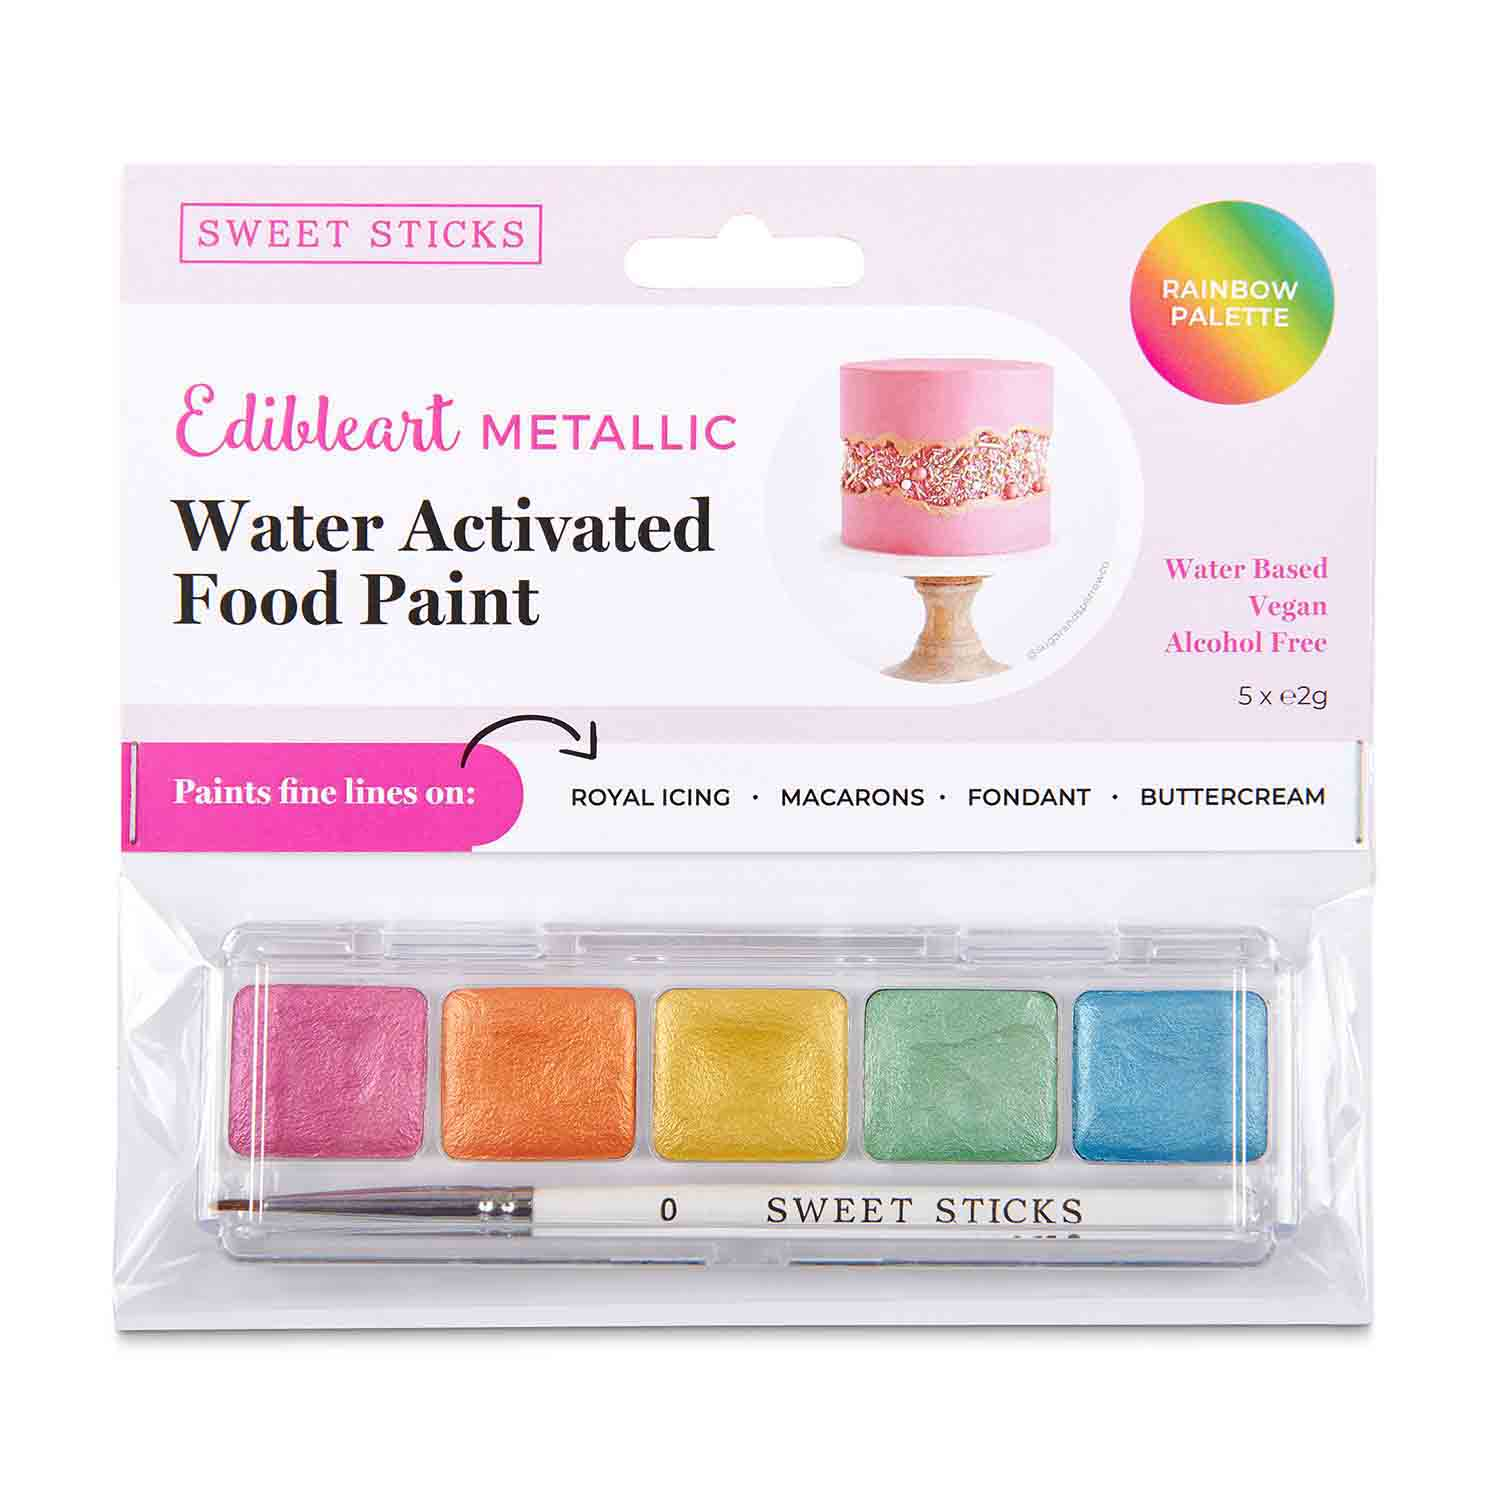 Rainbow Palette Metallic Water Activated Food Paint